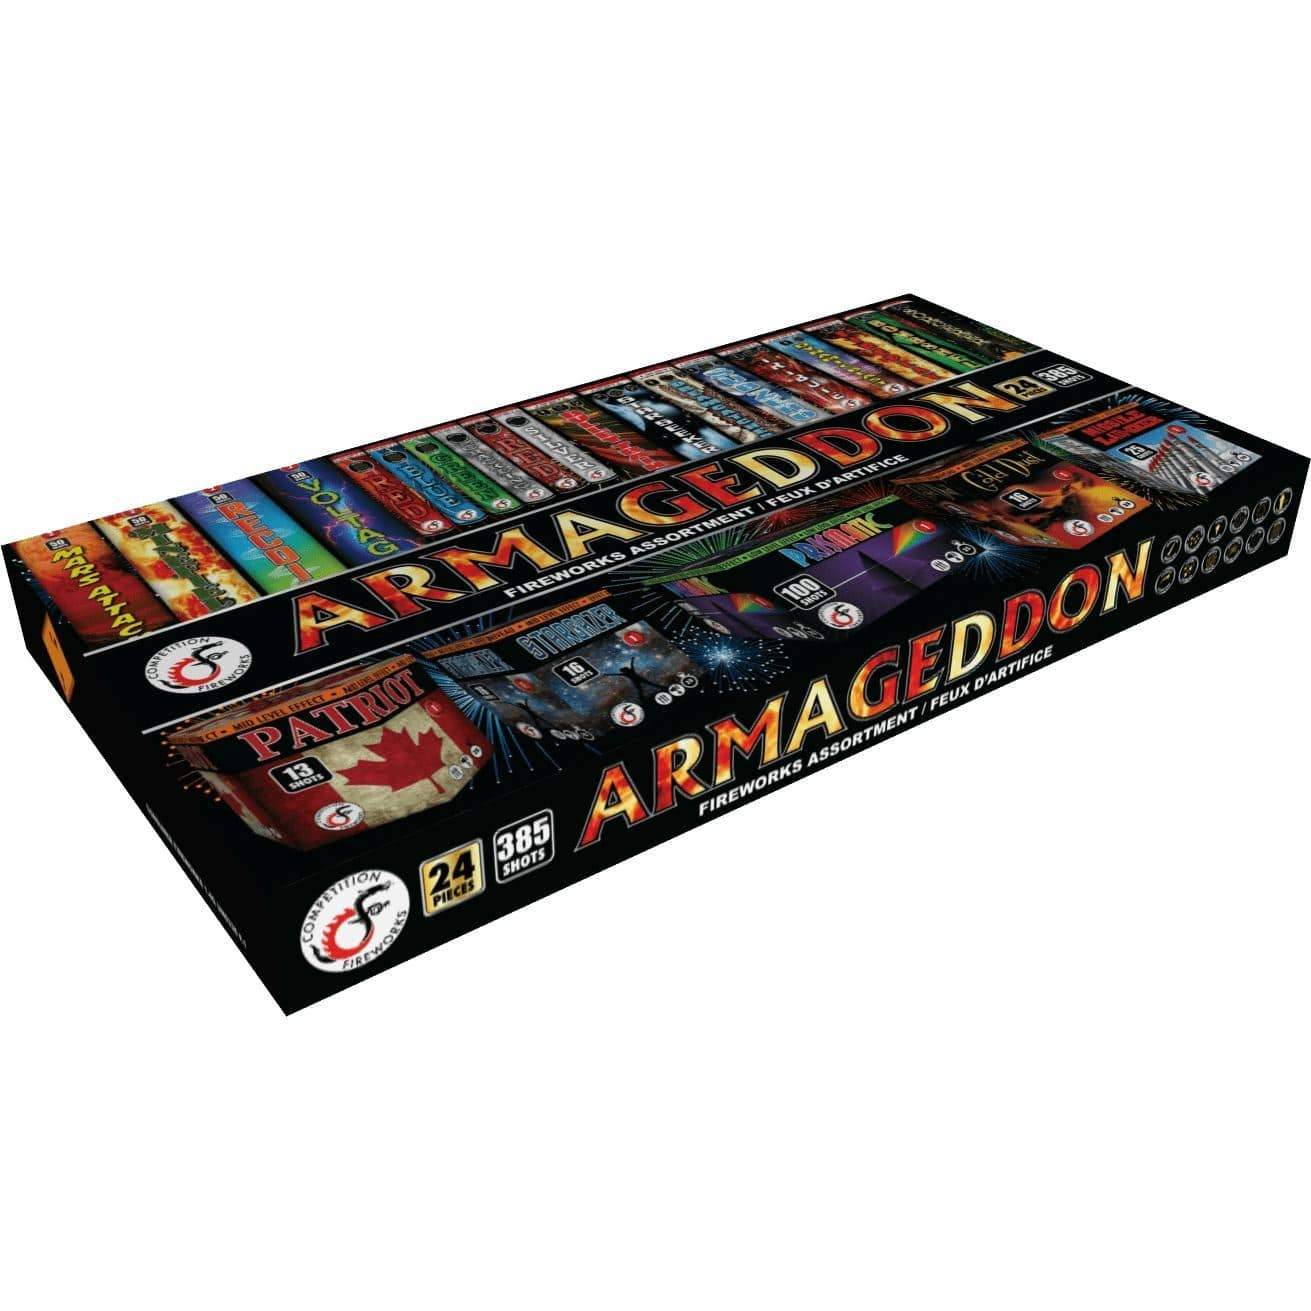 Competition Fireworks Family Pack Assortment Armageddon